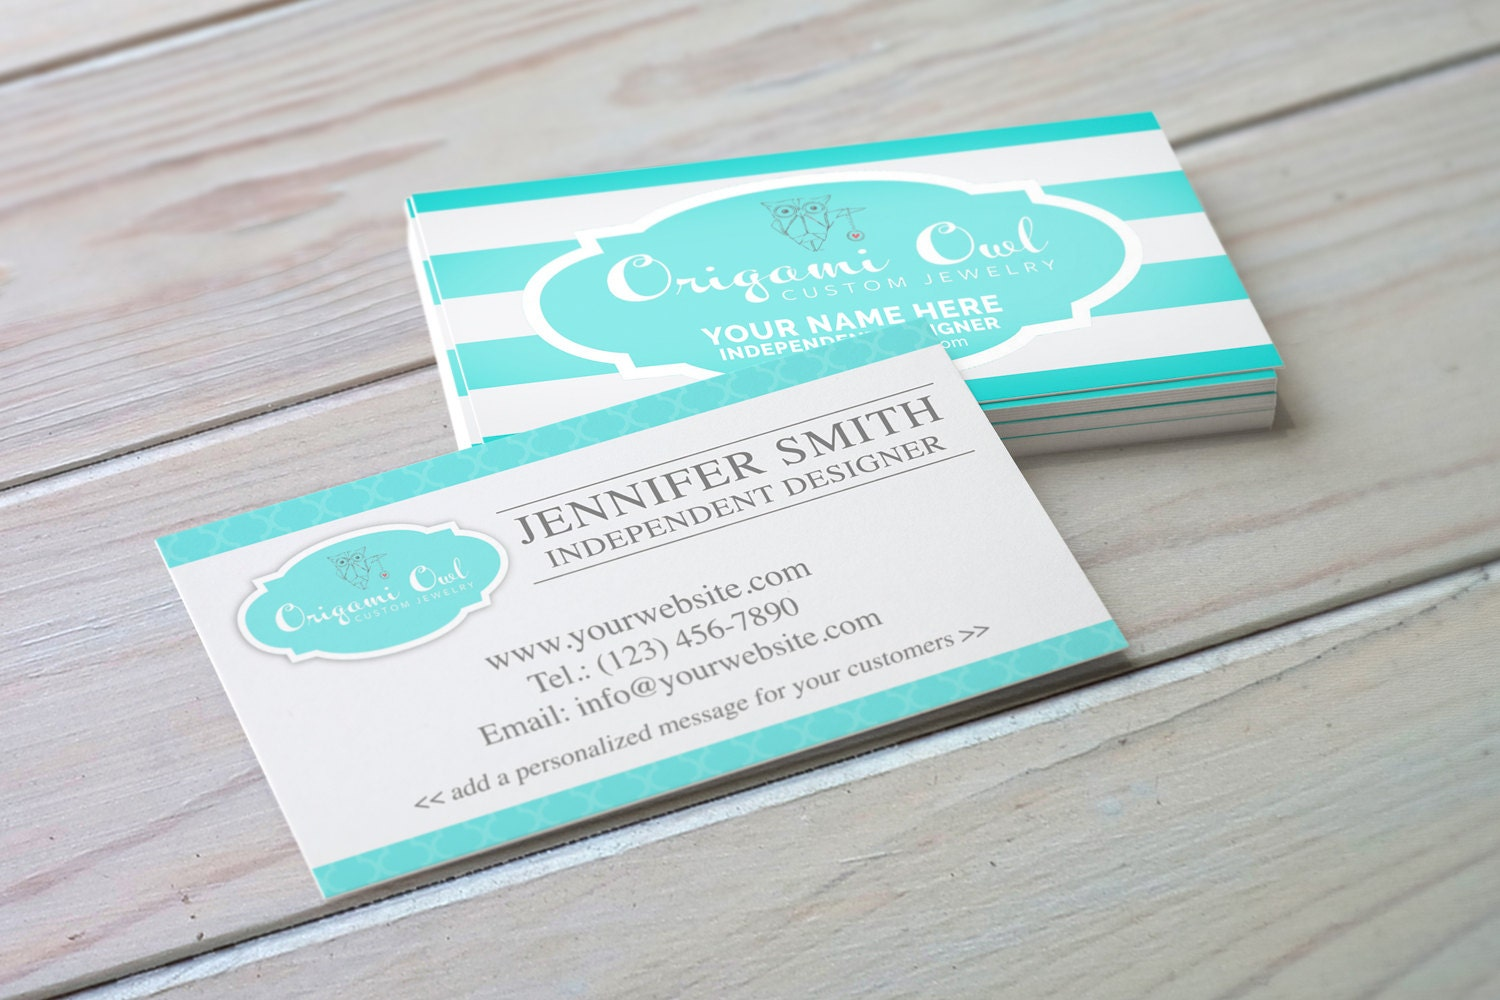 Origami Owl Inspired Business Card Digital Download Etsy